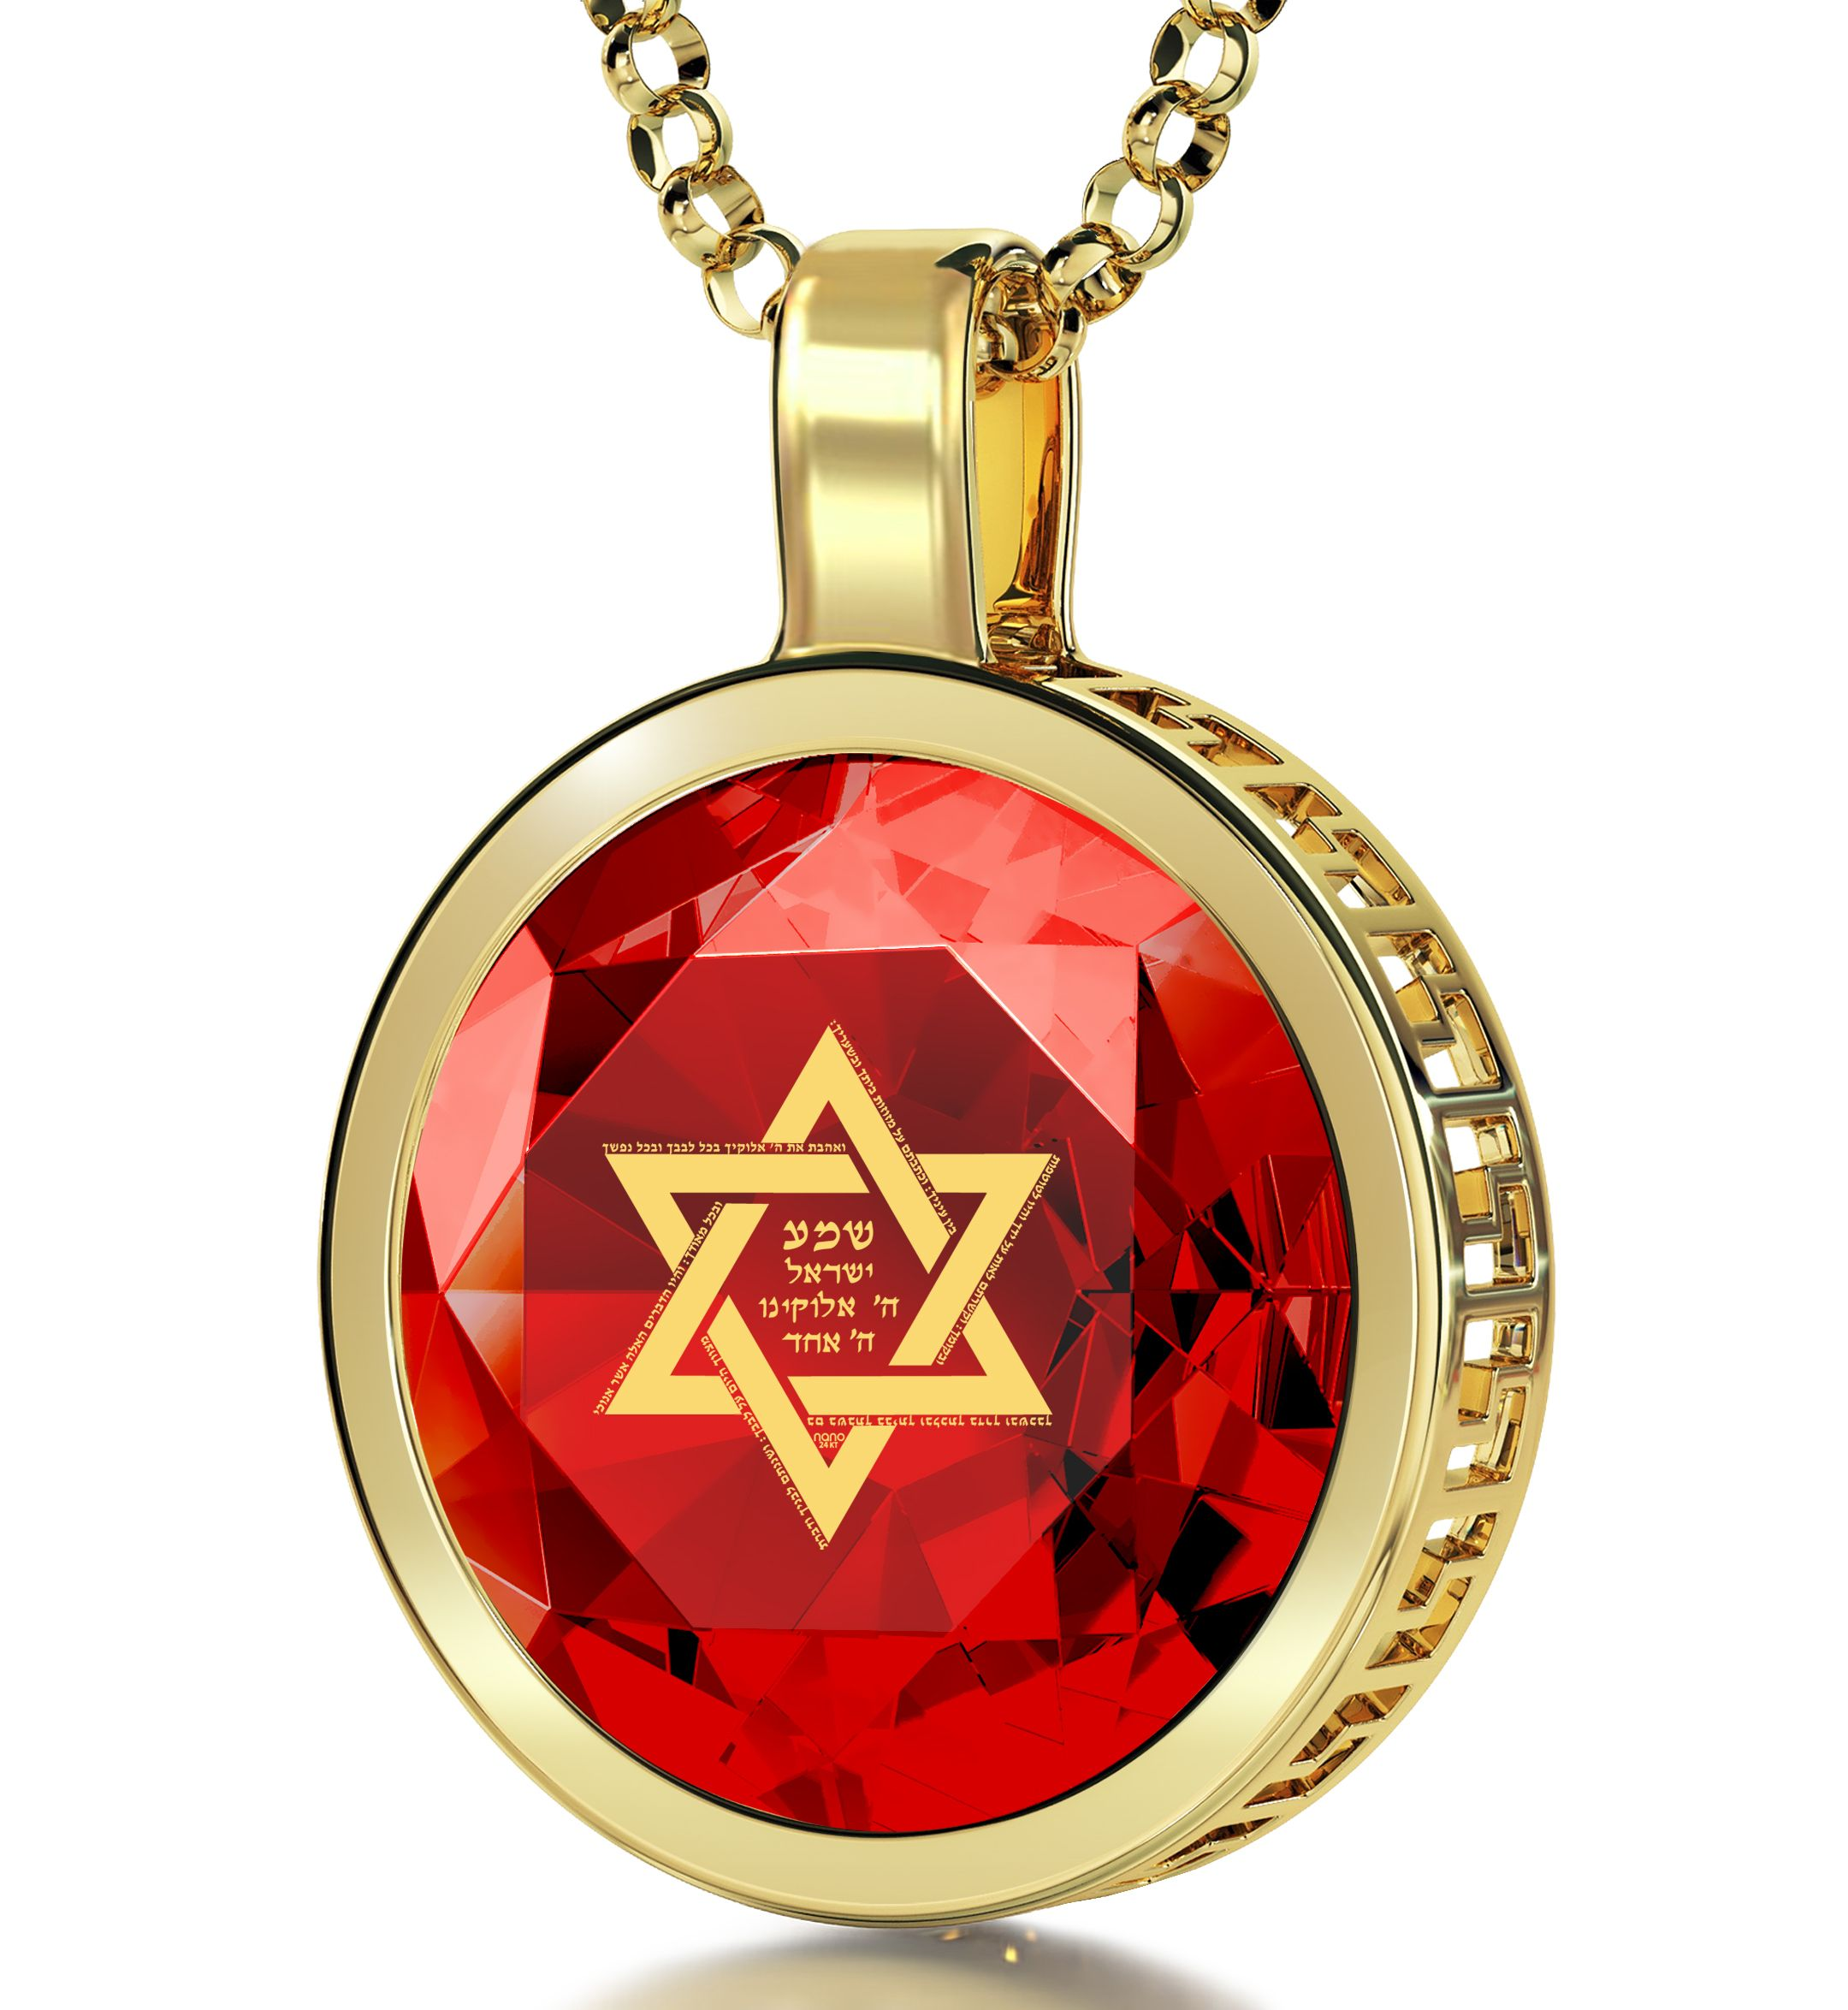 Star of David Necklace Hebrew Shema Yisrael 24ct Gold Inscribed on Black Onyx, 18